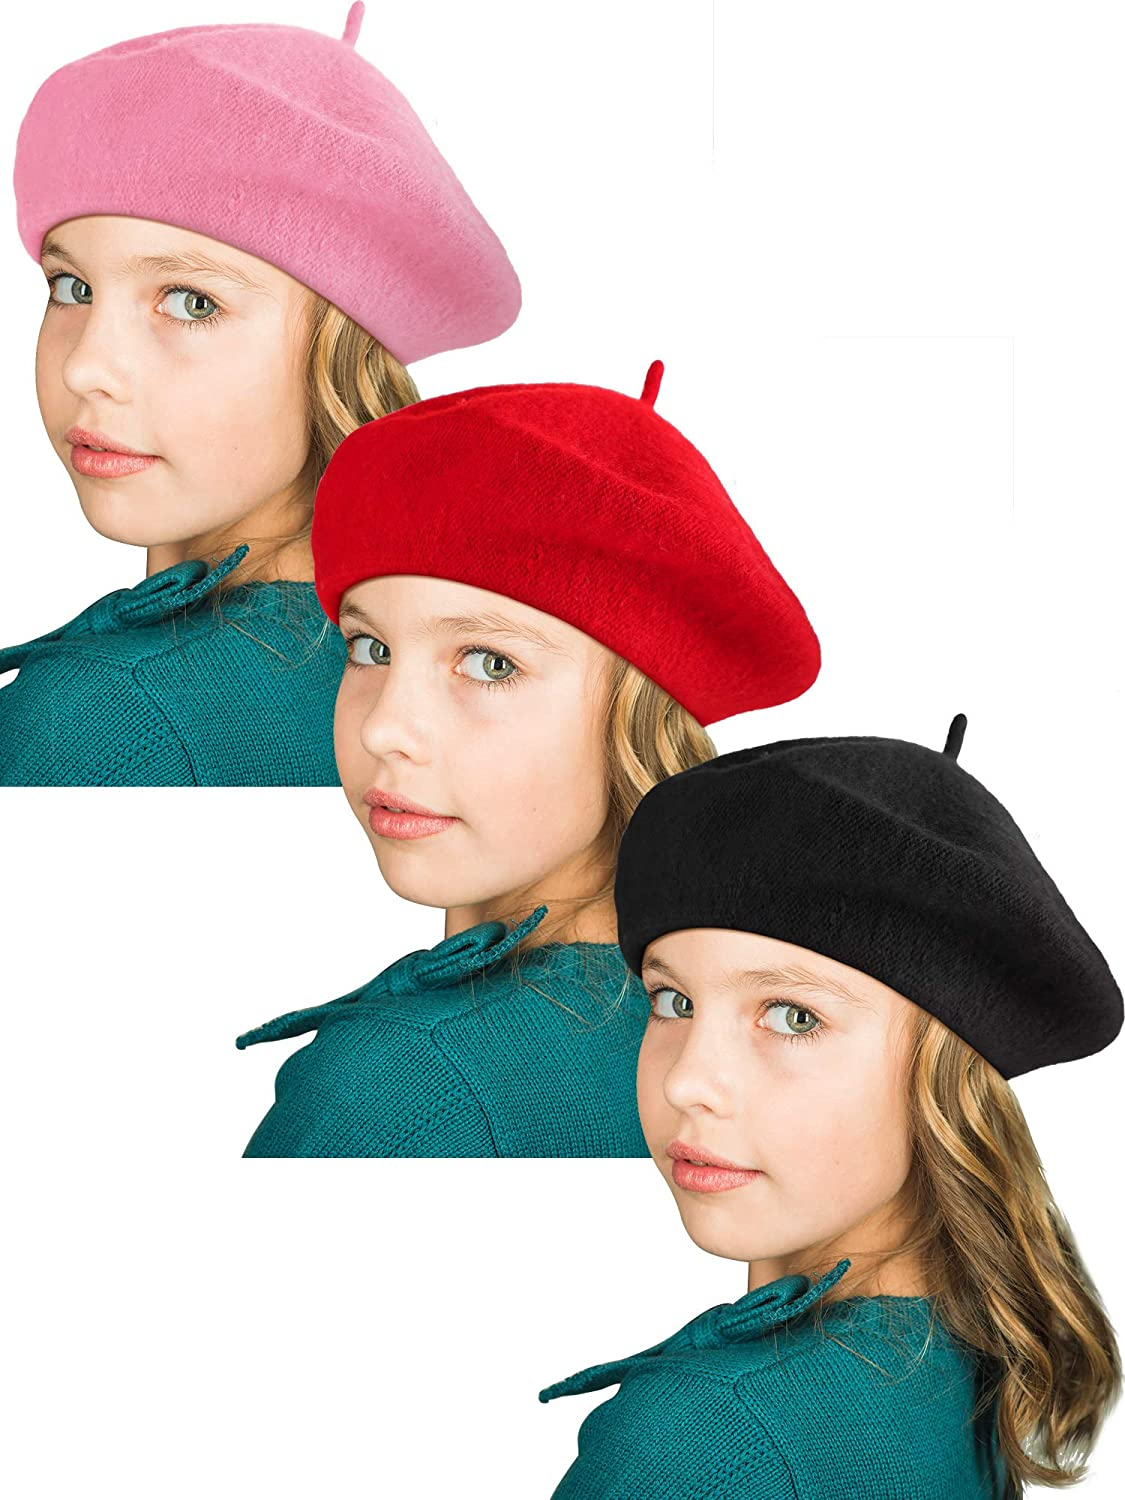 SATINIOR 3 Pieces Kids Winter Pom Hat Toddler Knitted Hat Warm Stretchy Cap for Boys Girls